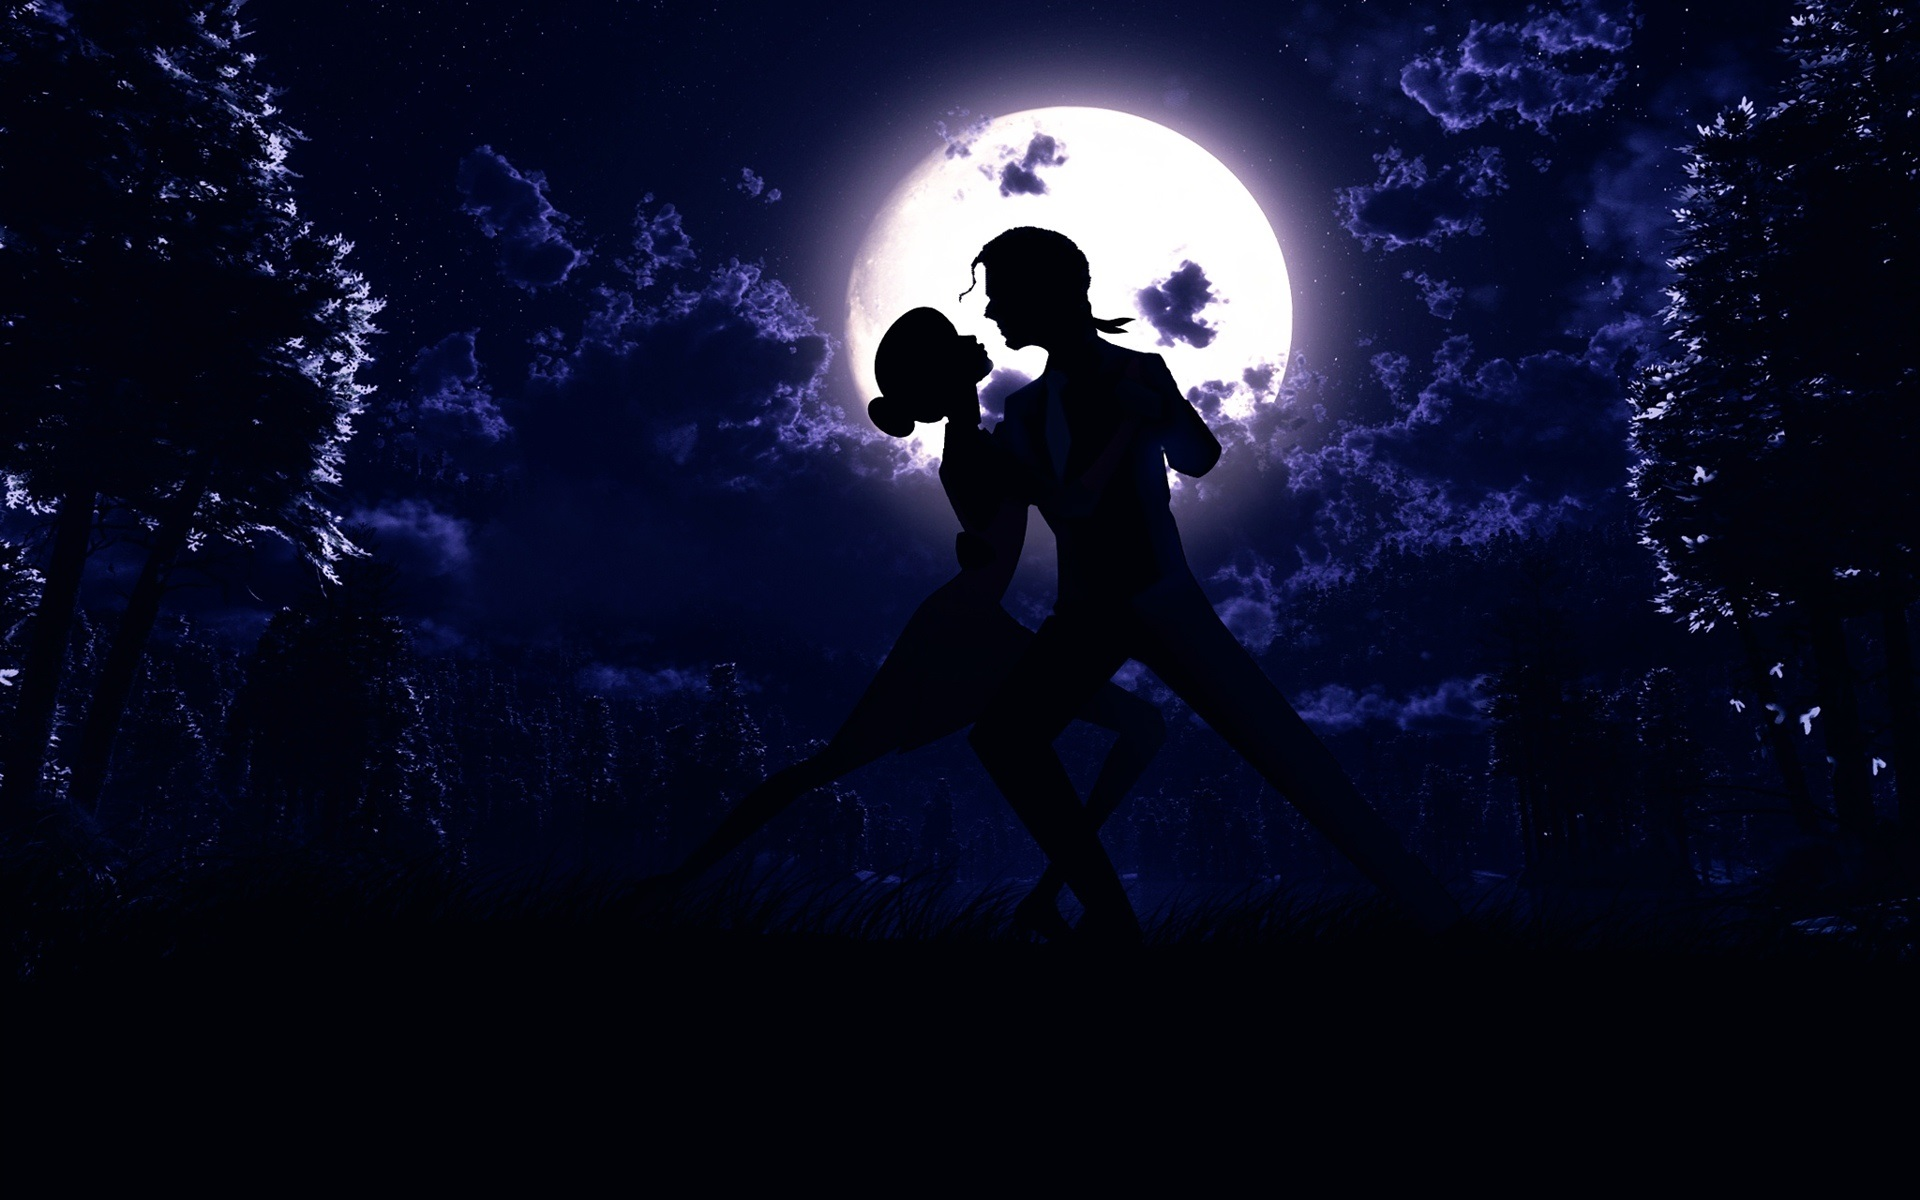 Wallpaper Moon Night Pair Dance Love Silhouette Art Pictures